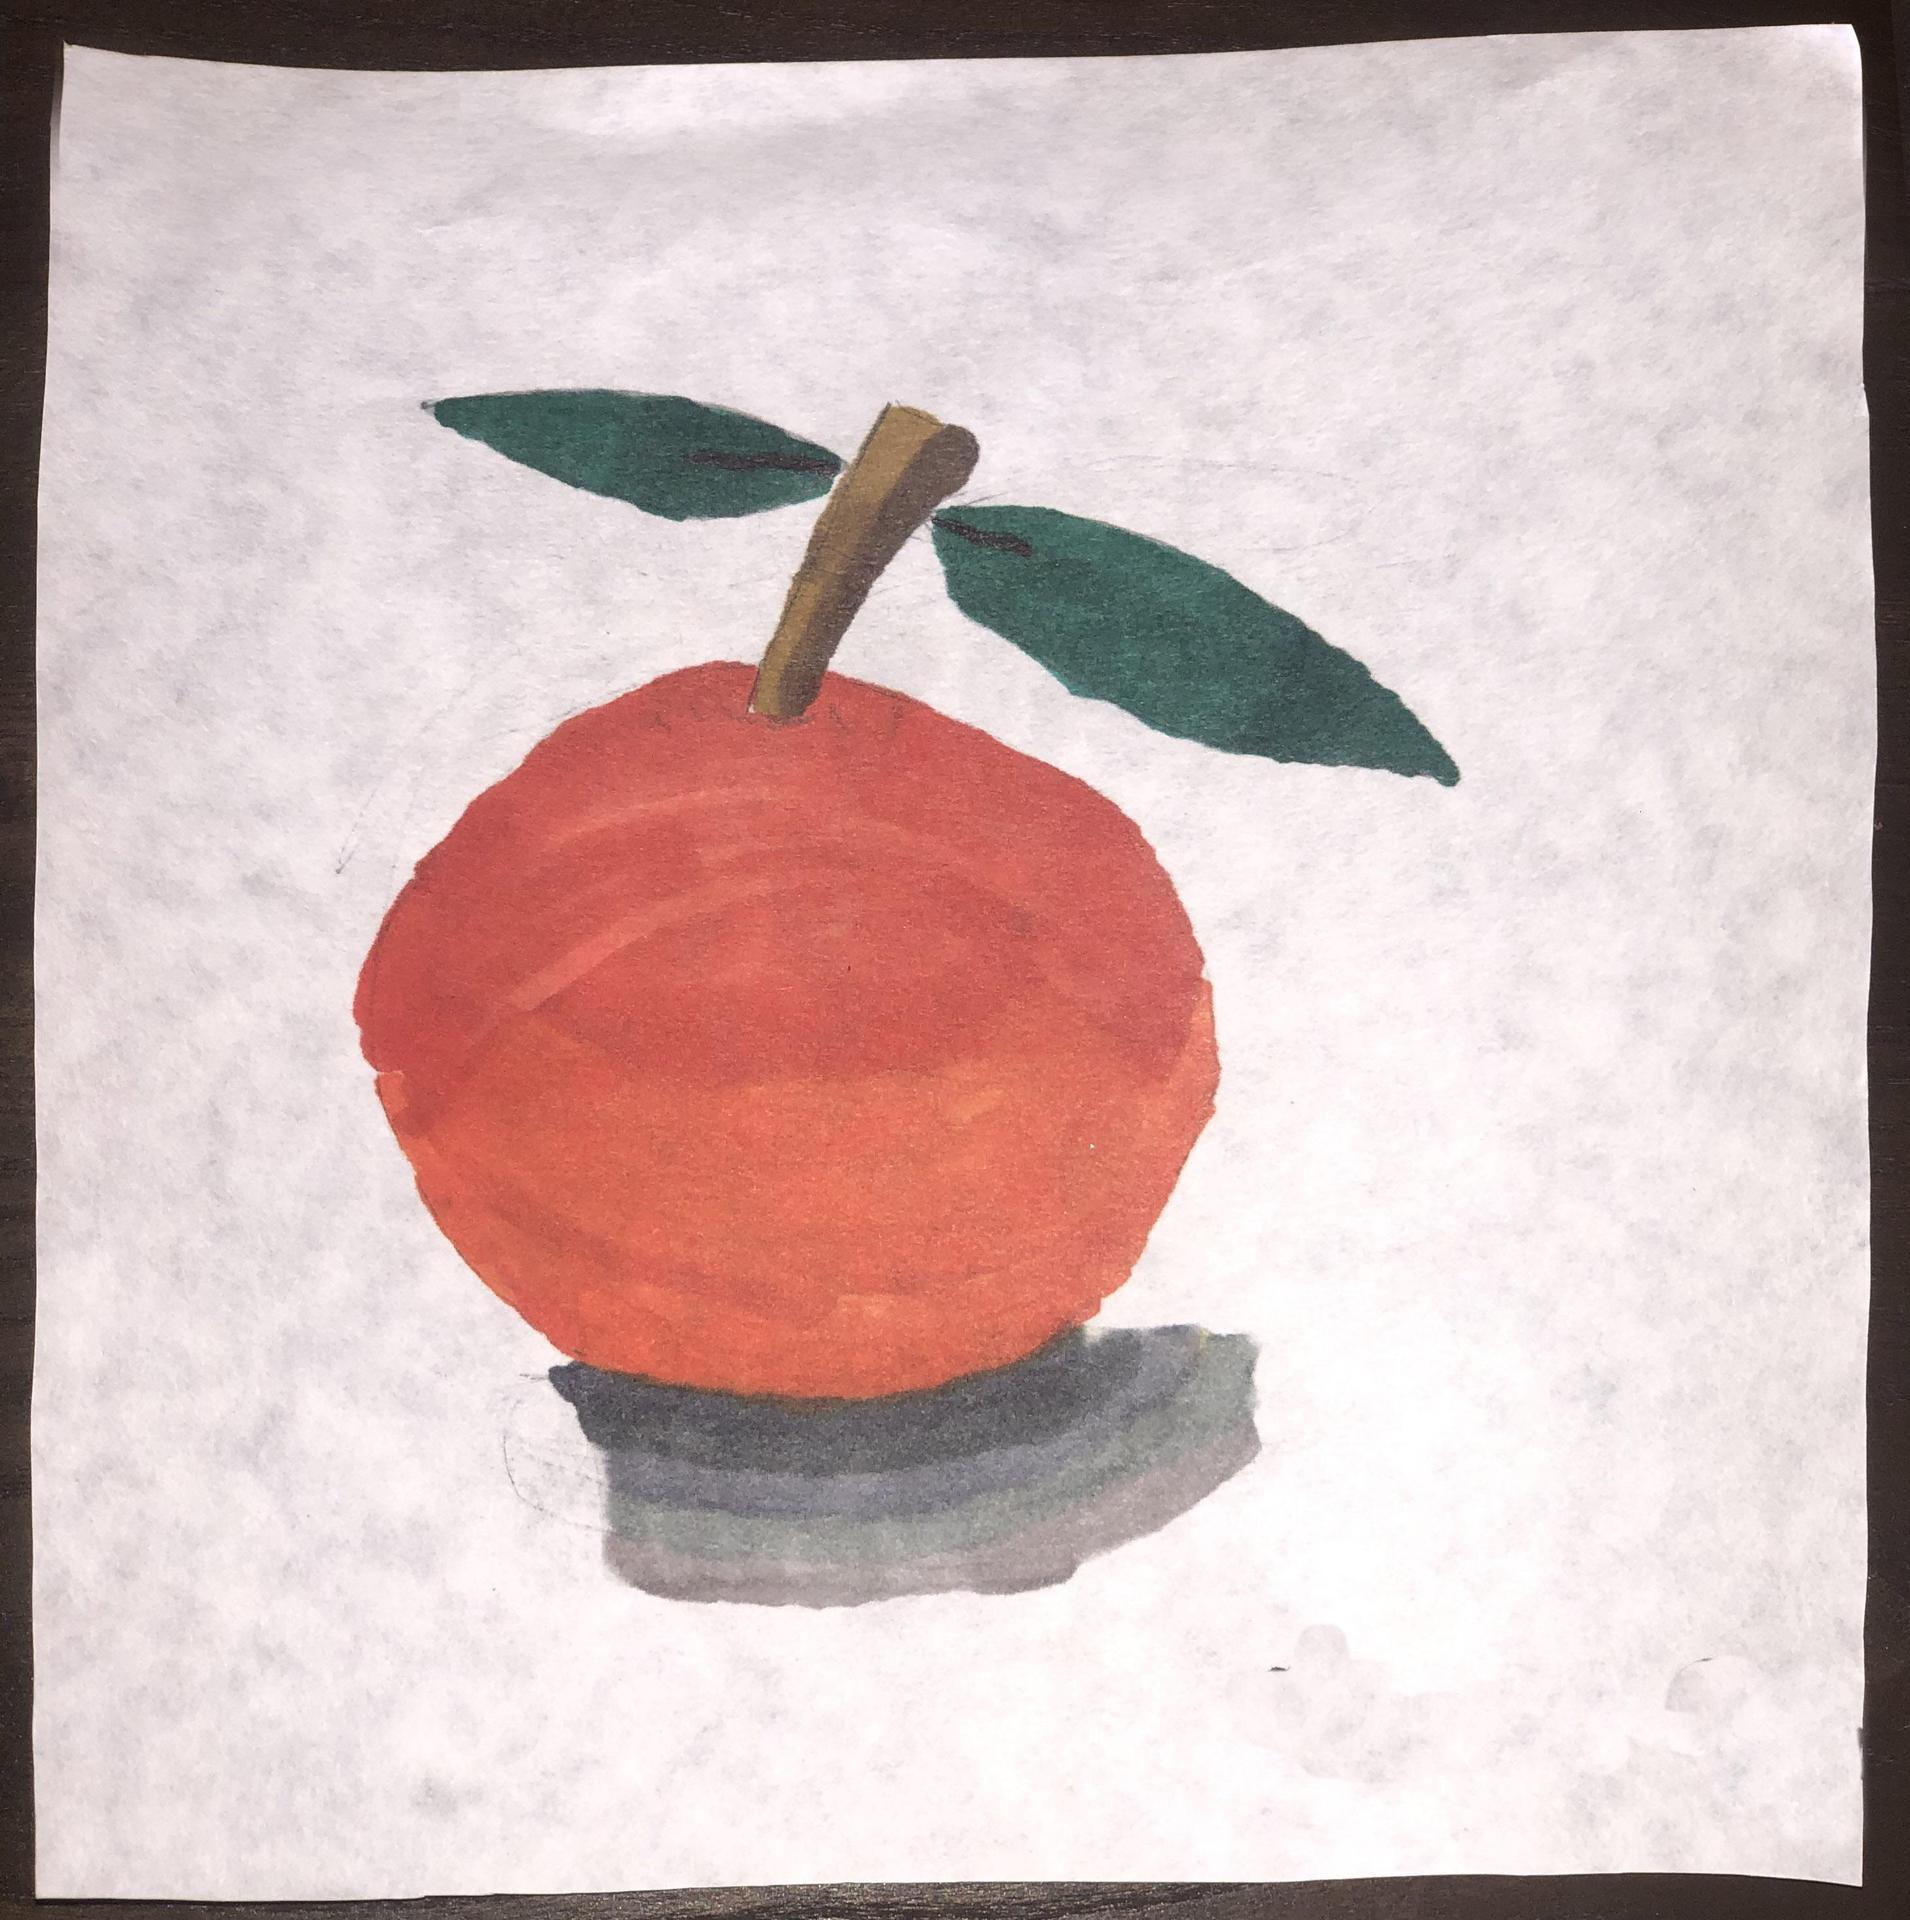 A third grader's gorgeous realistic marker drawing of a peach